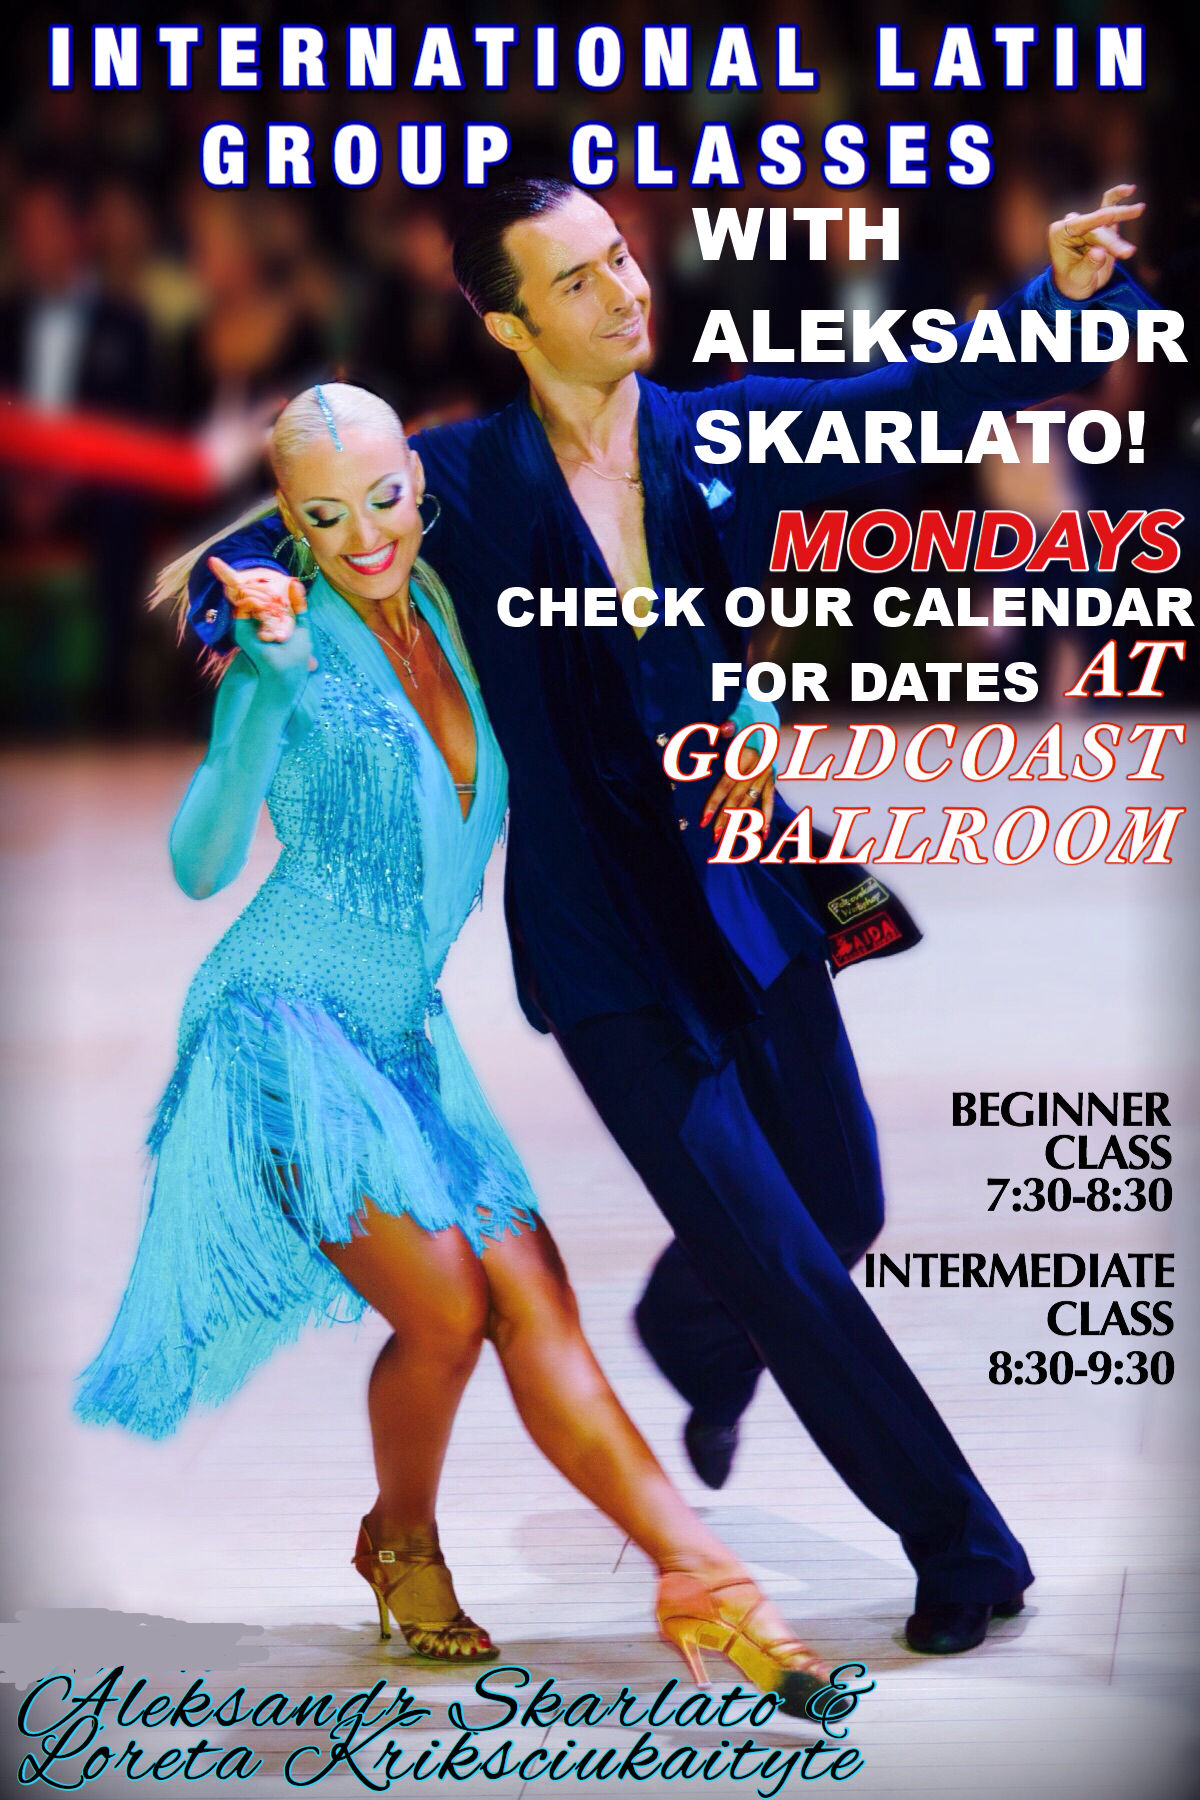 Click to Print Flyer:  Aleksandr Skarlato - International Latin Classes - Mondays At Goldcoast Ballroom - Check Calendar For Dates